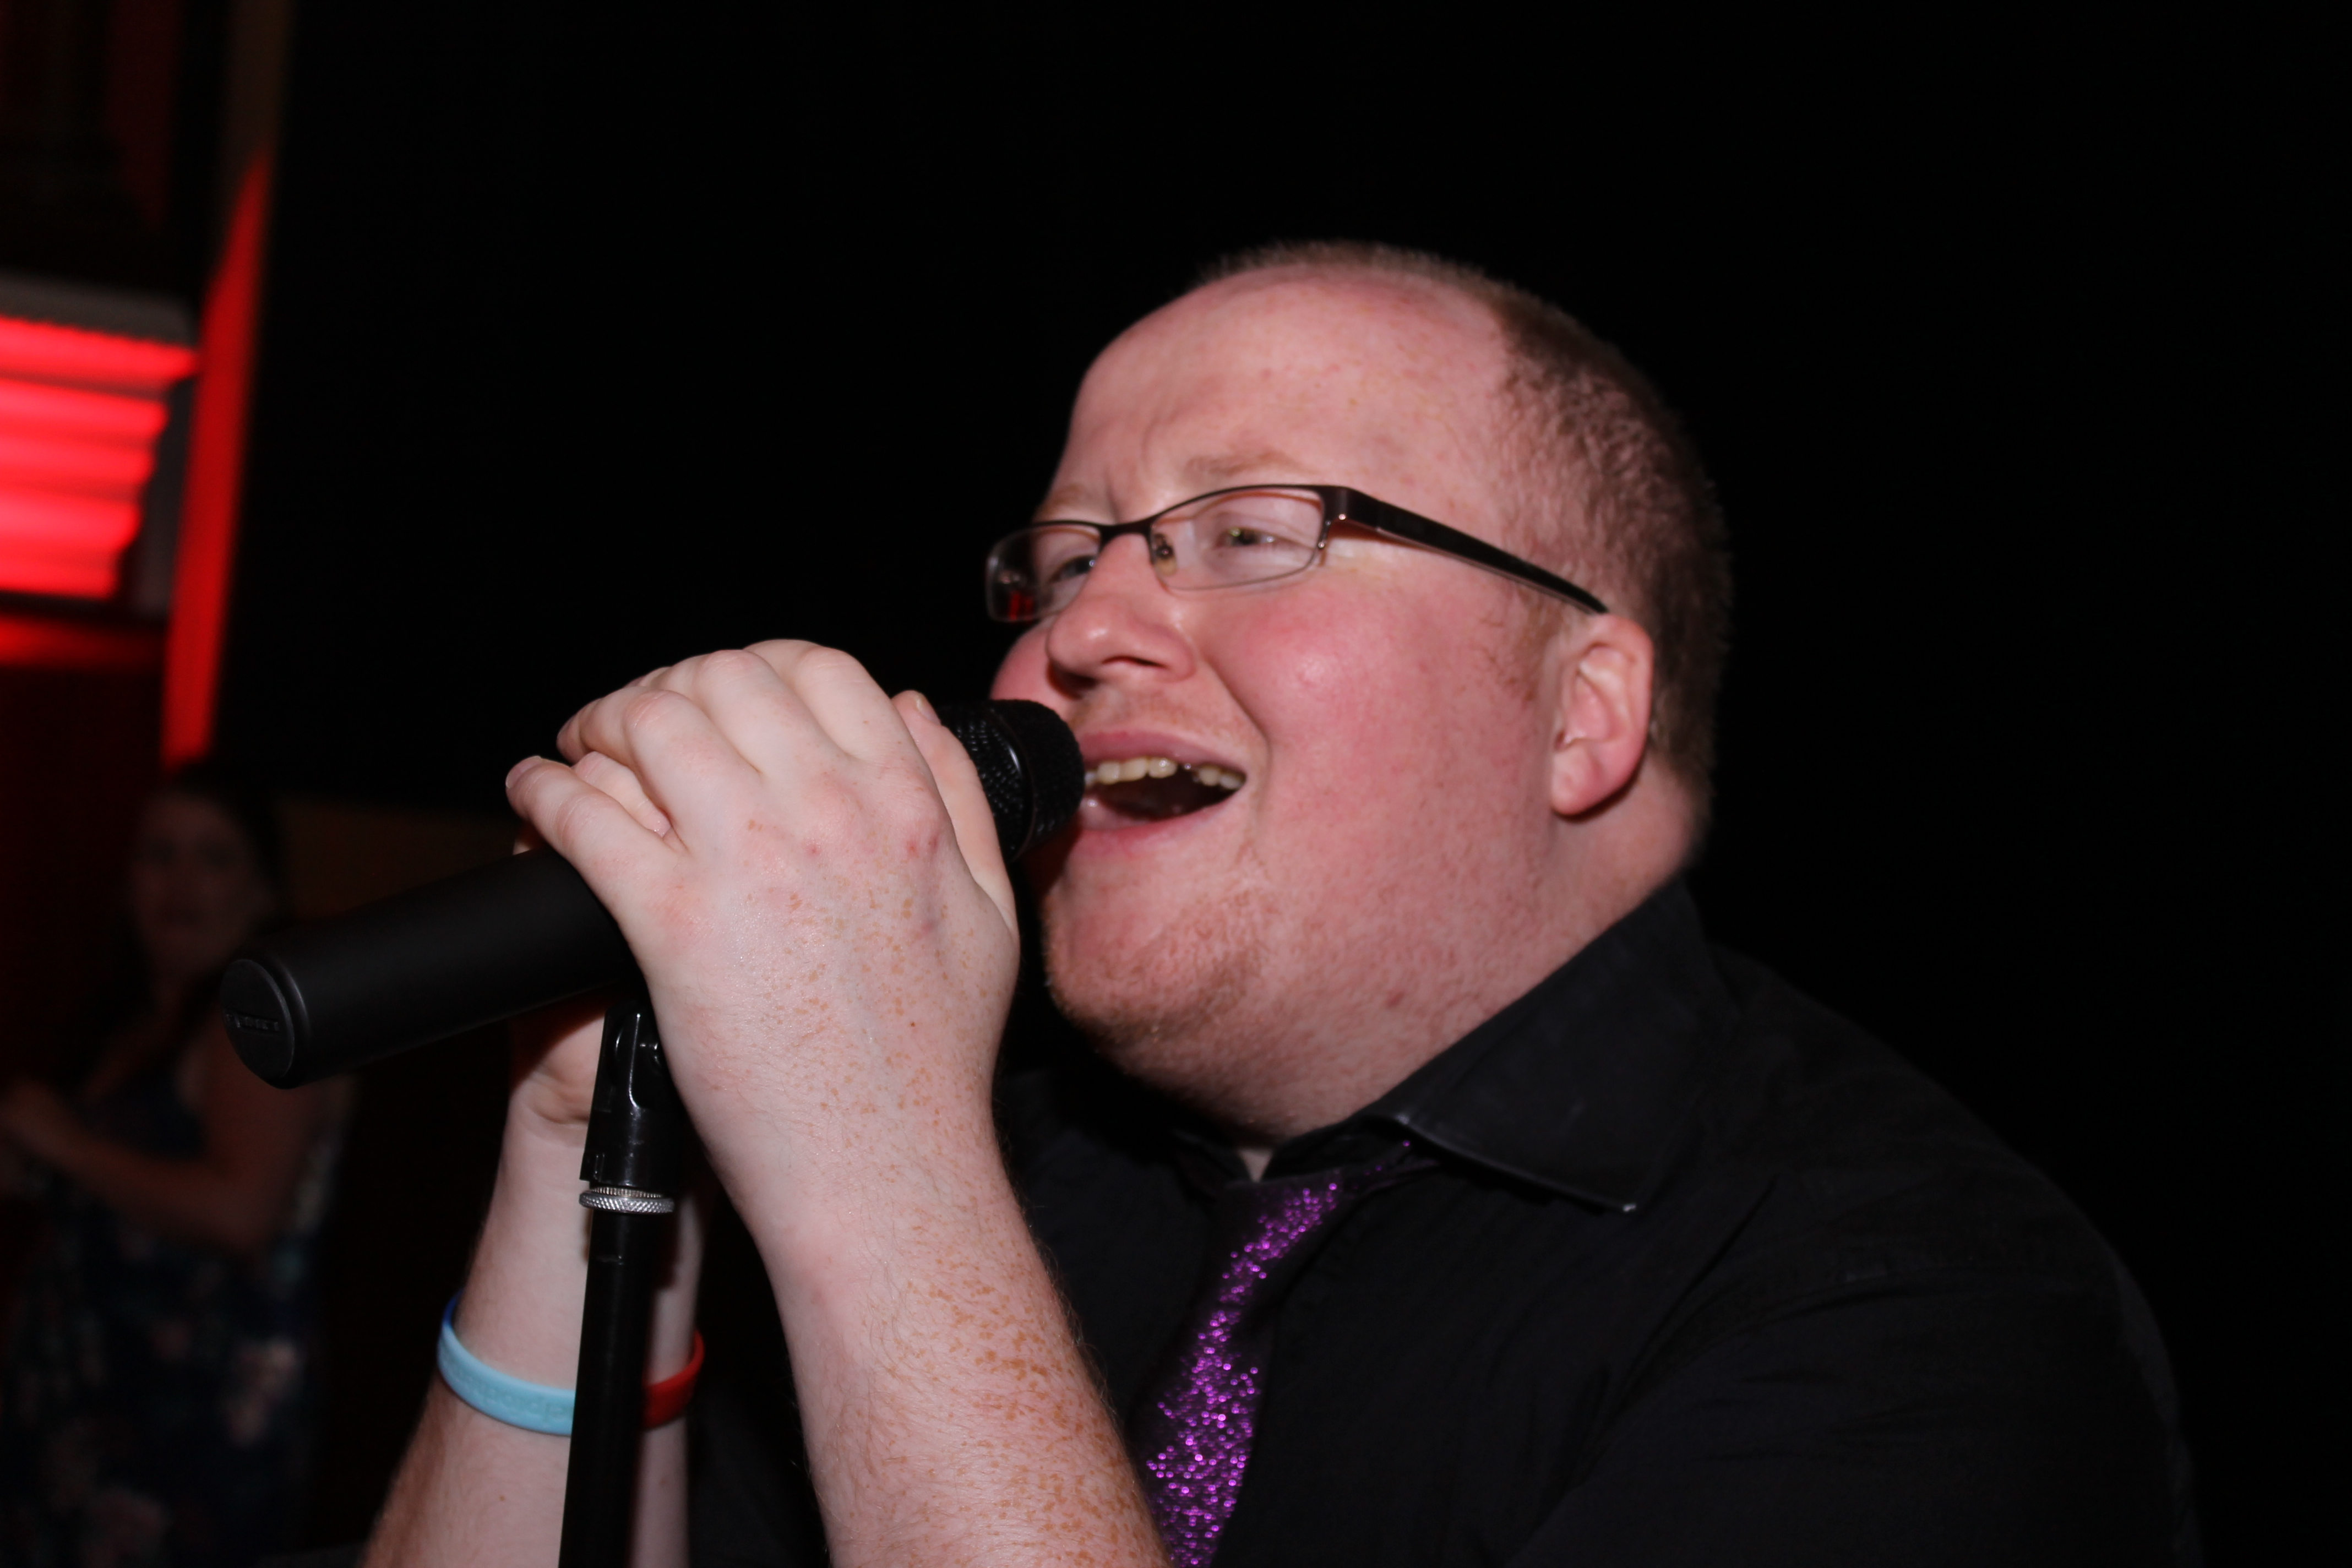 Glasgow Wedding Singer